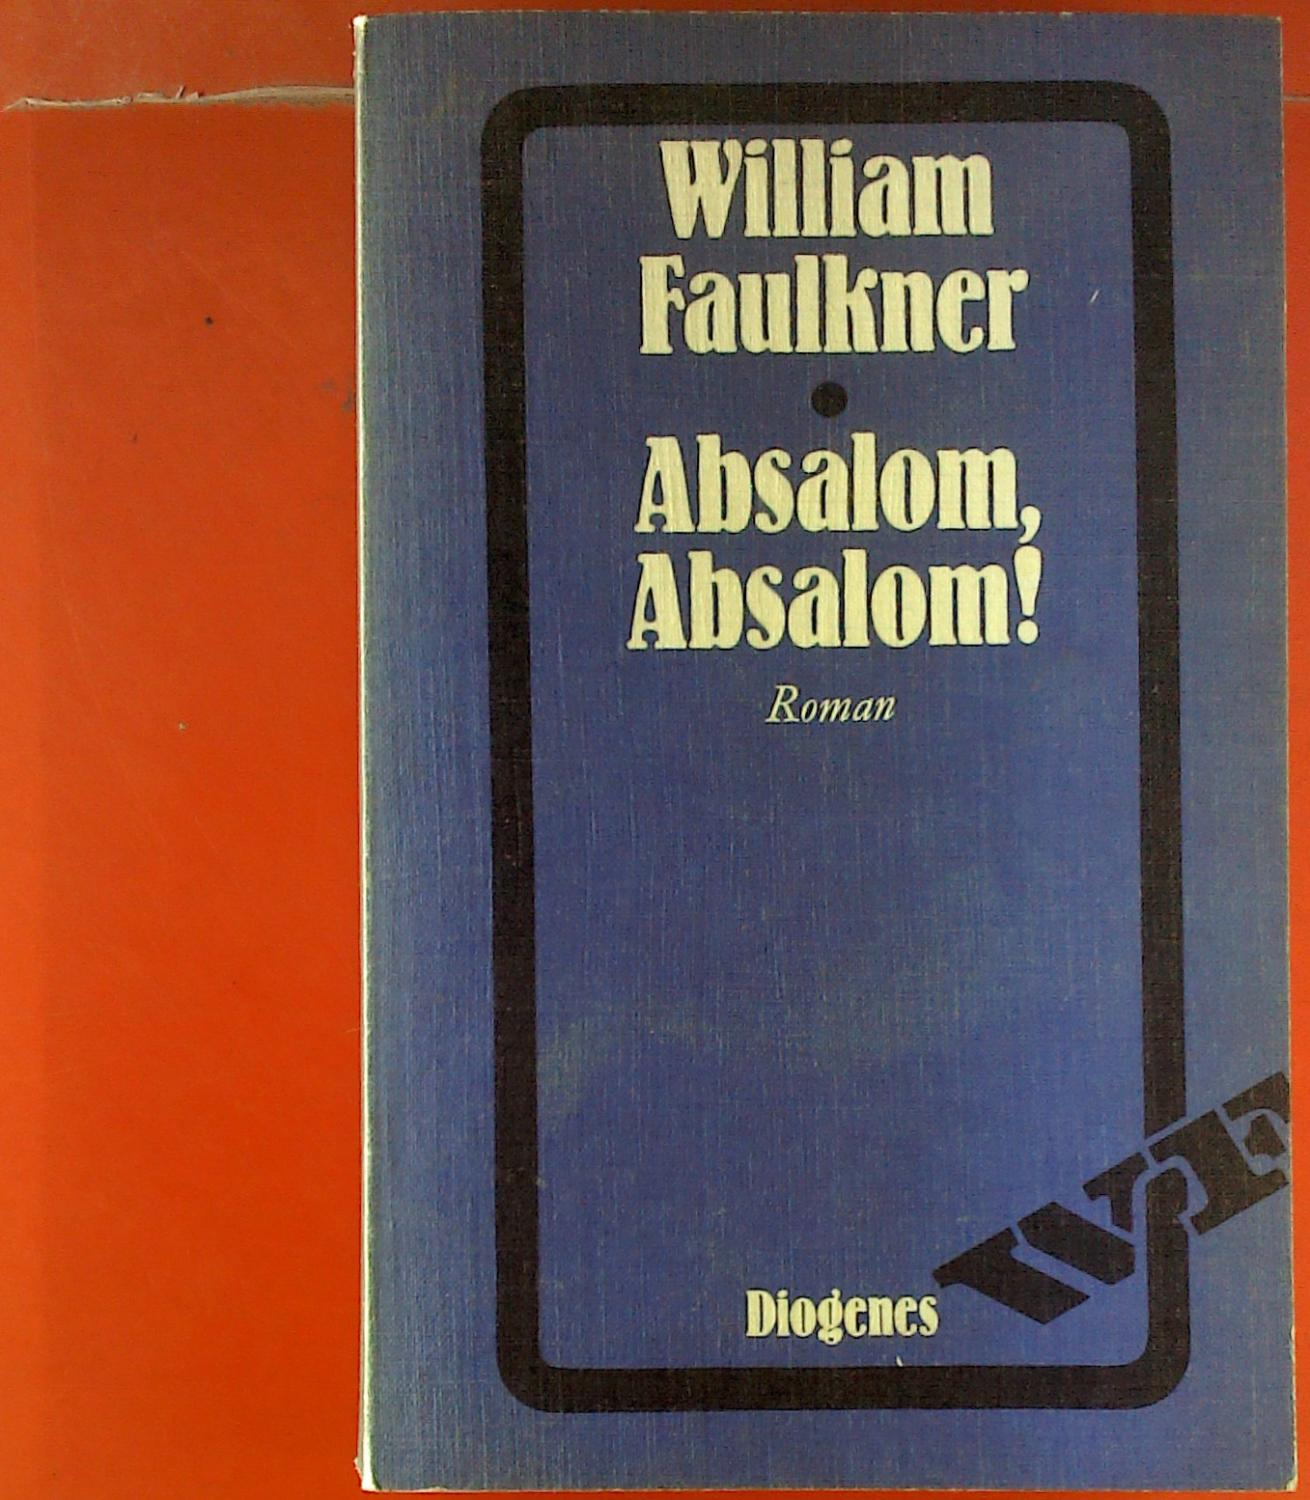 an analysis of the novel absalom absalom by william faulkner Remains a useful form of analysis for each novel furthering the importance of blood, john t irwin describes thomas sutpen of absalom, absalom in.